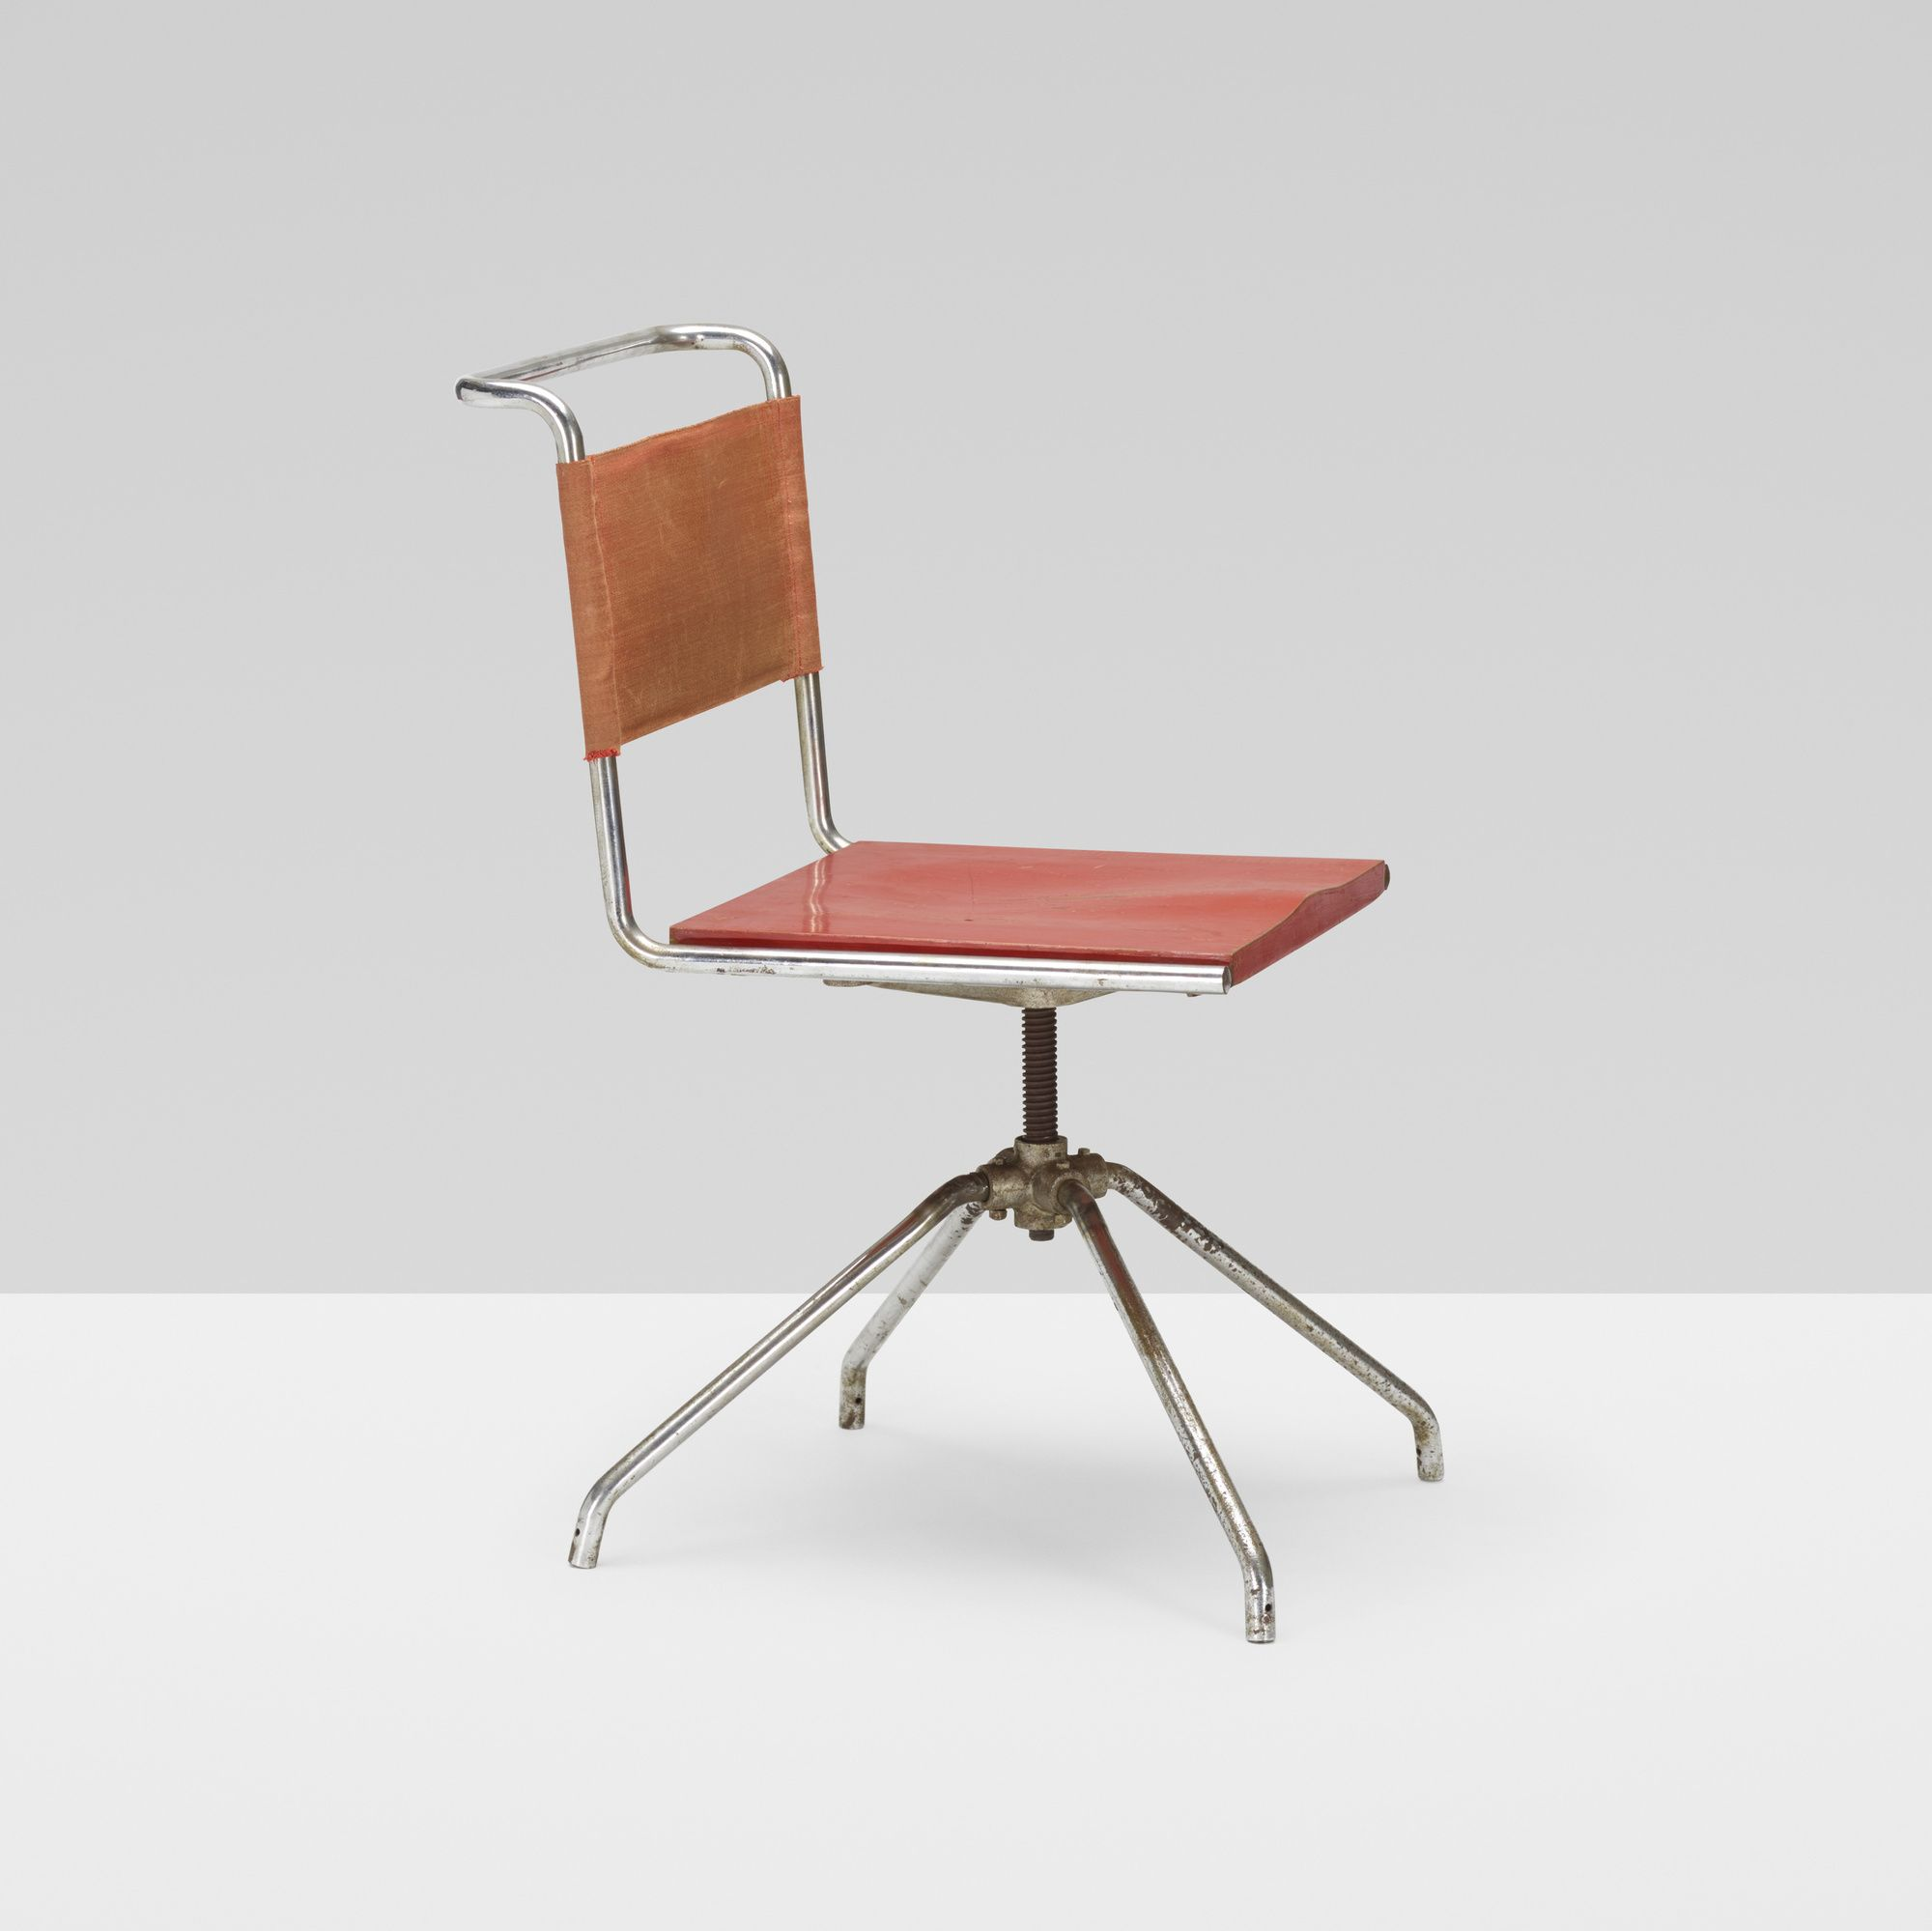 marcel breuer b7 chair thonet hungary austria 1927 furniture rh pinterest com